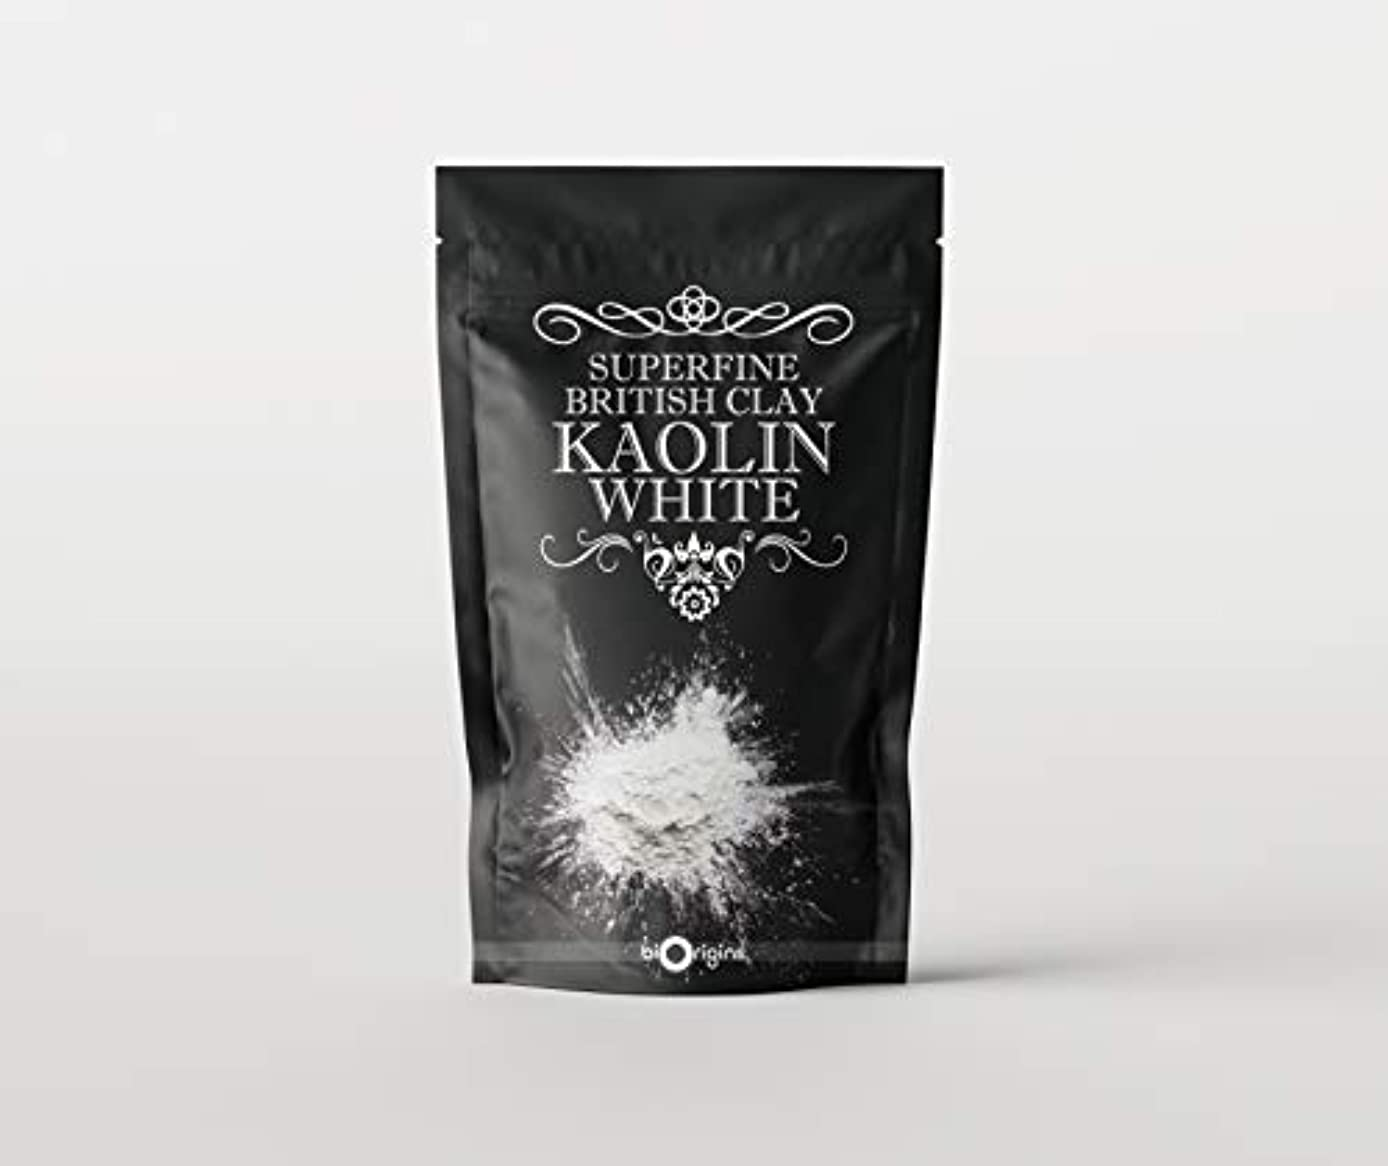 渇き謝罪する軸Kaolin White Superfine British Clay - 500g